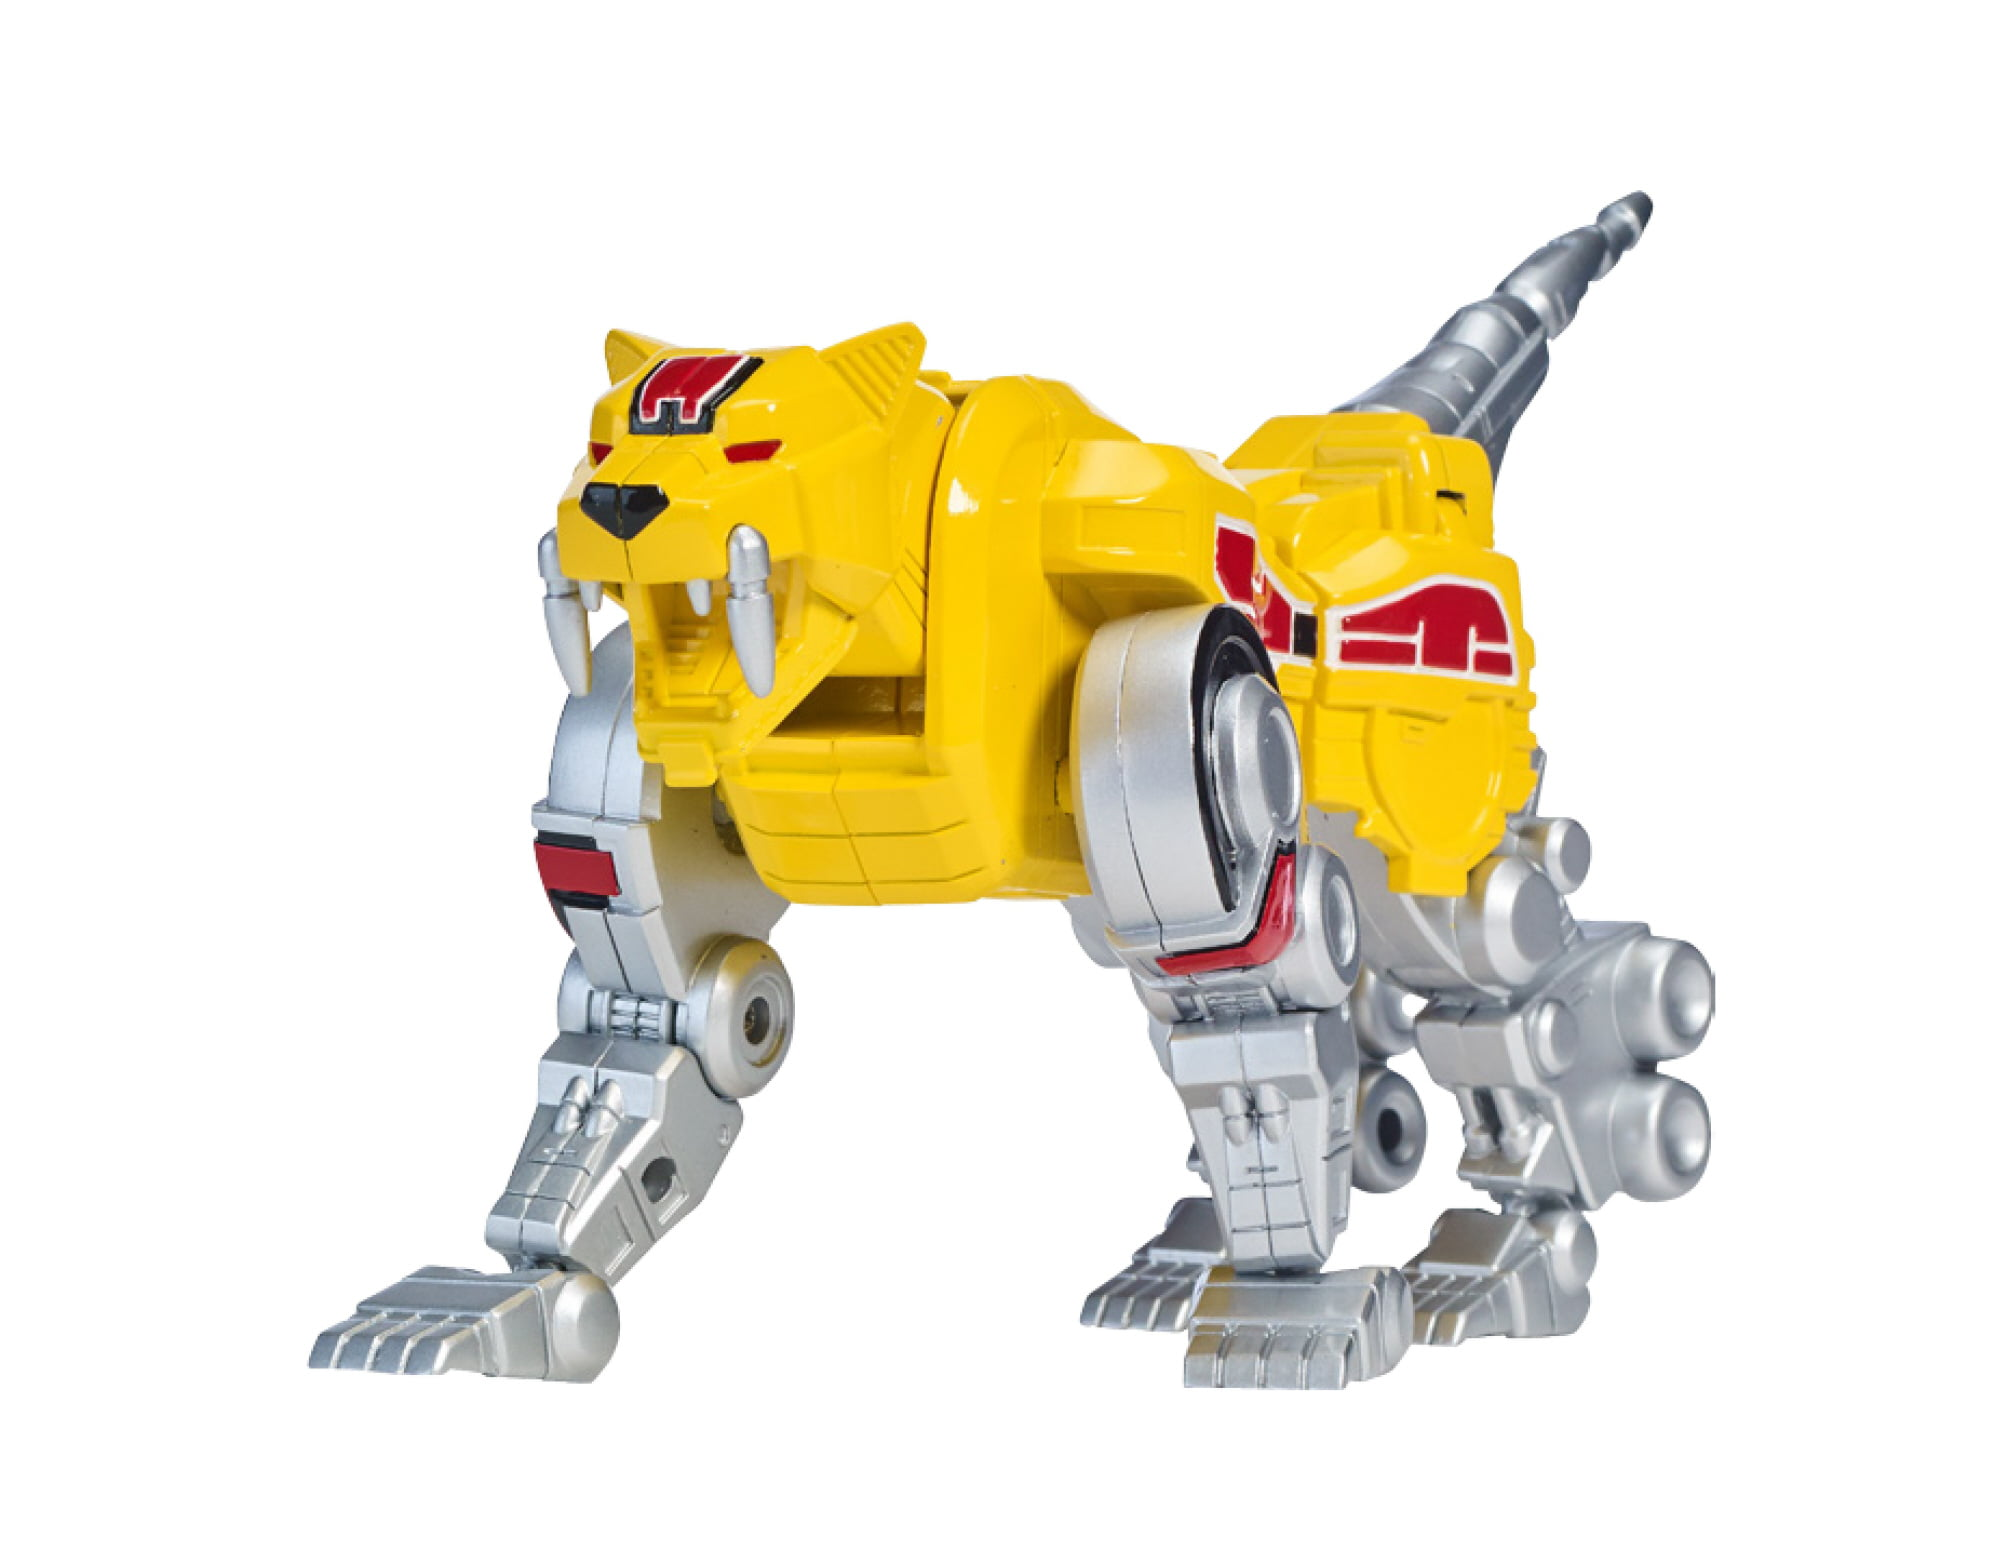 Bandai Power Rangers Mighty Morphin Legacy Zord, Sabertooth Tiger by Bandai America